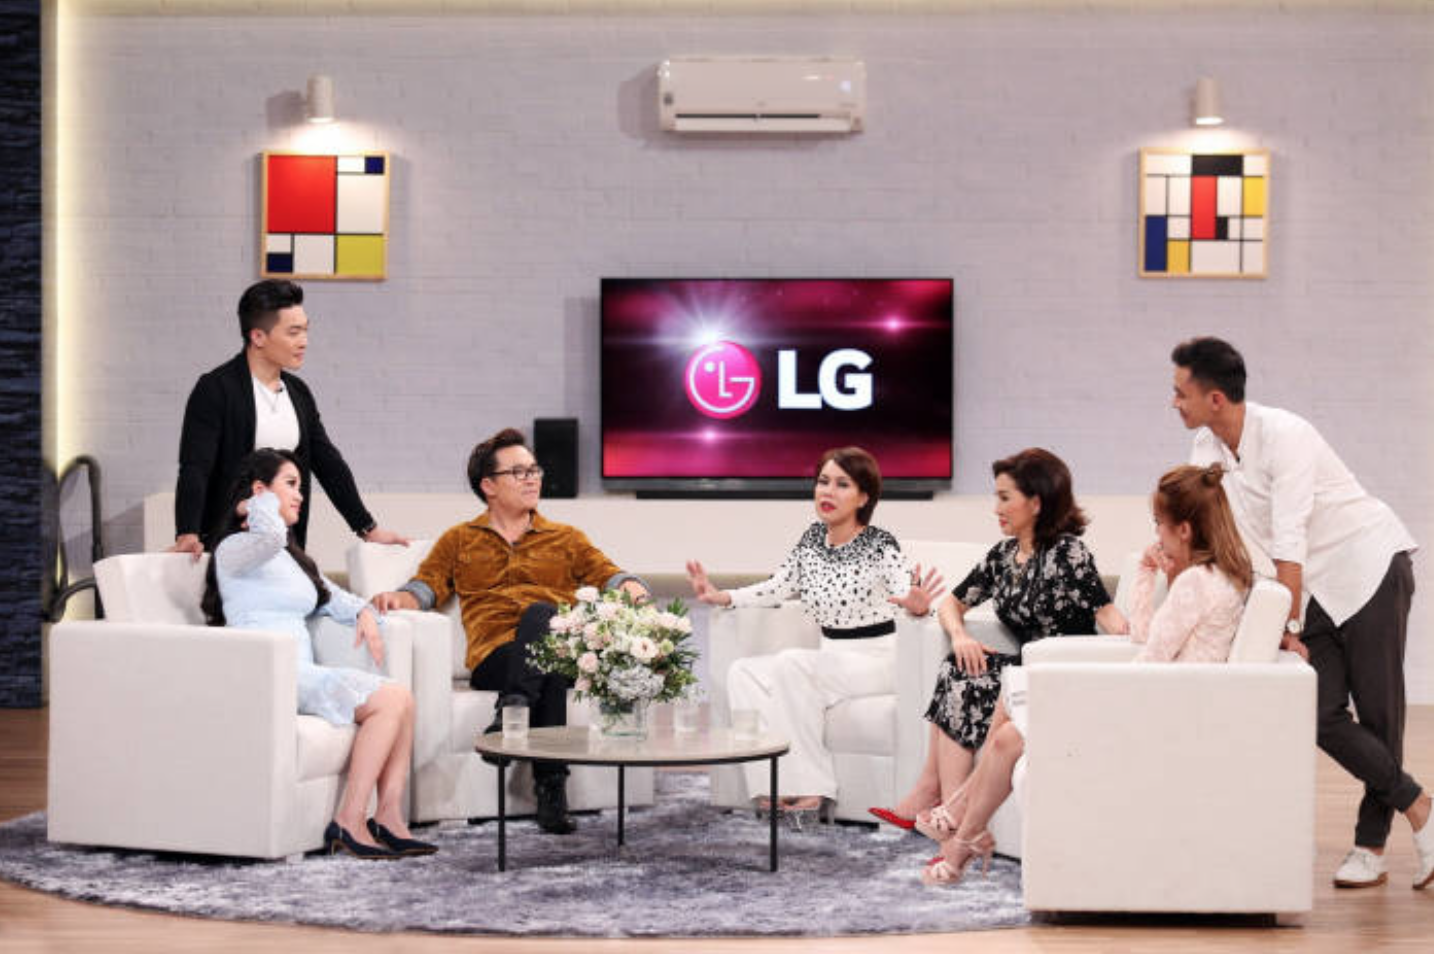 LG to Market Premium Home Appliances on Vietnamese TV Show | Be